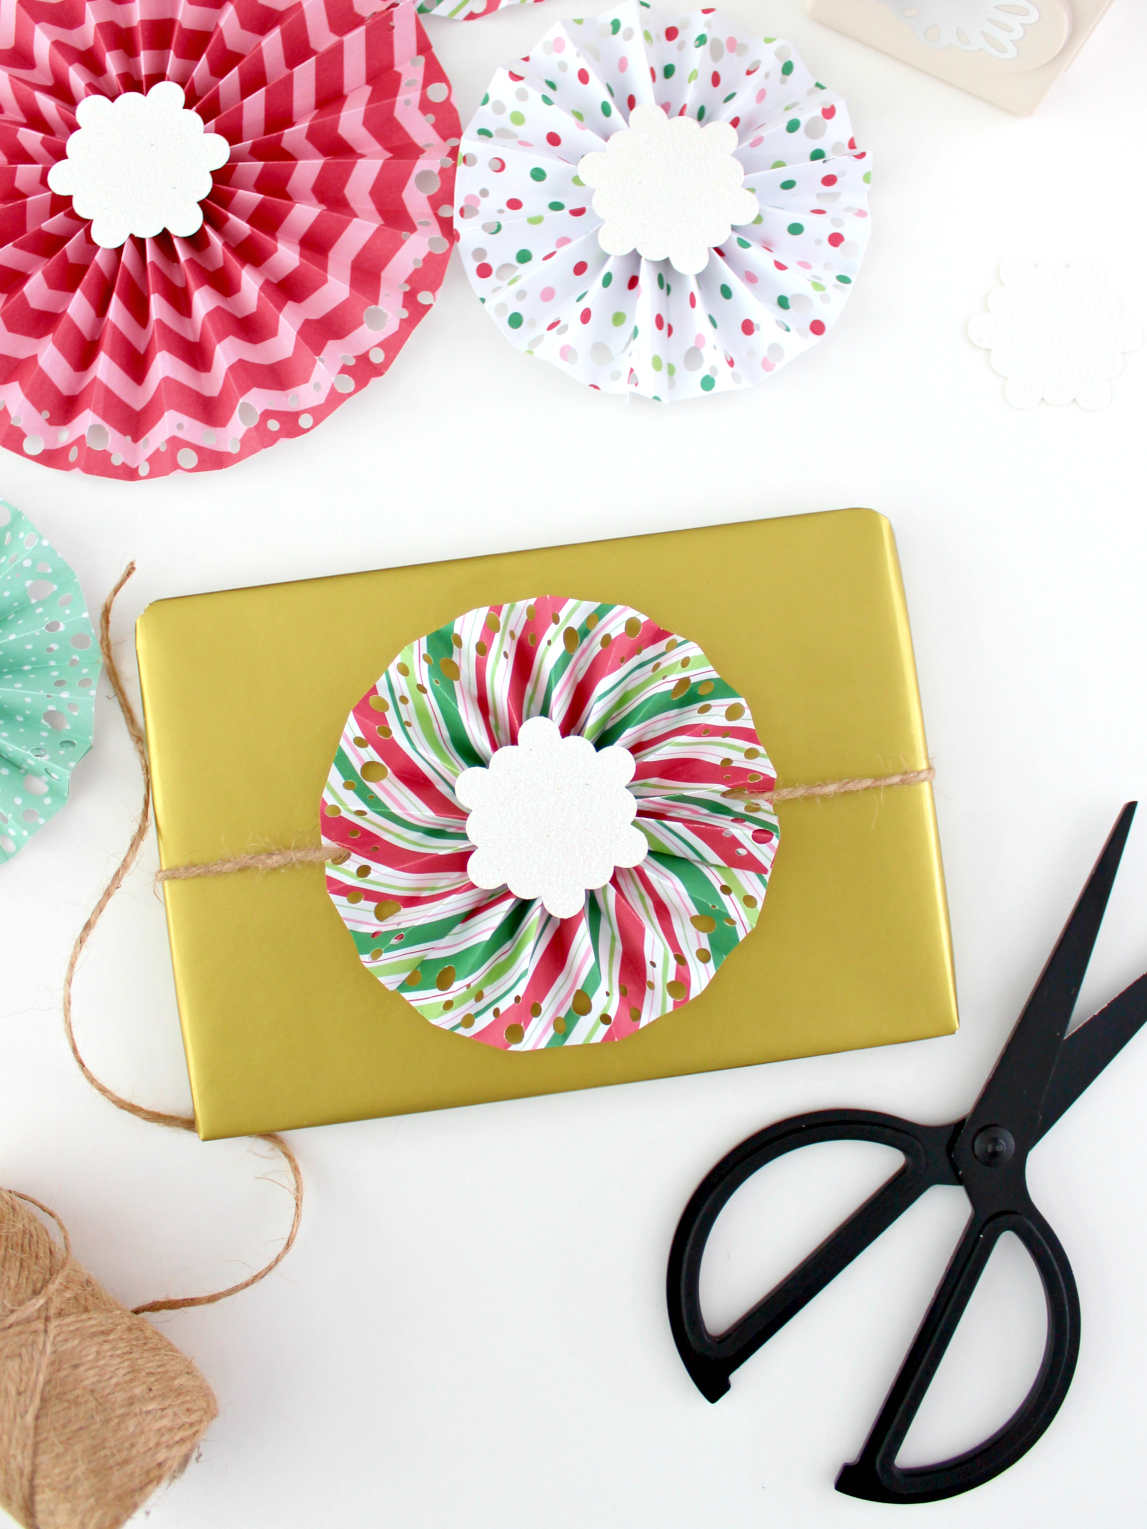 6 WAYS I'M WRAPPING MY HOLIDAY GIFTS THIS YEAR